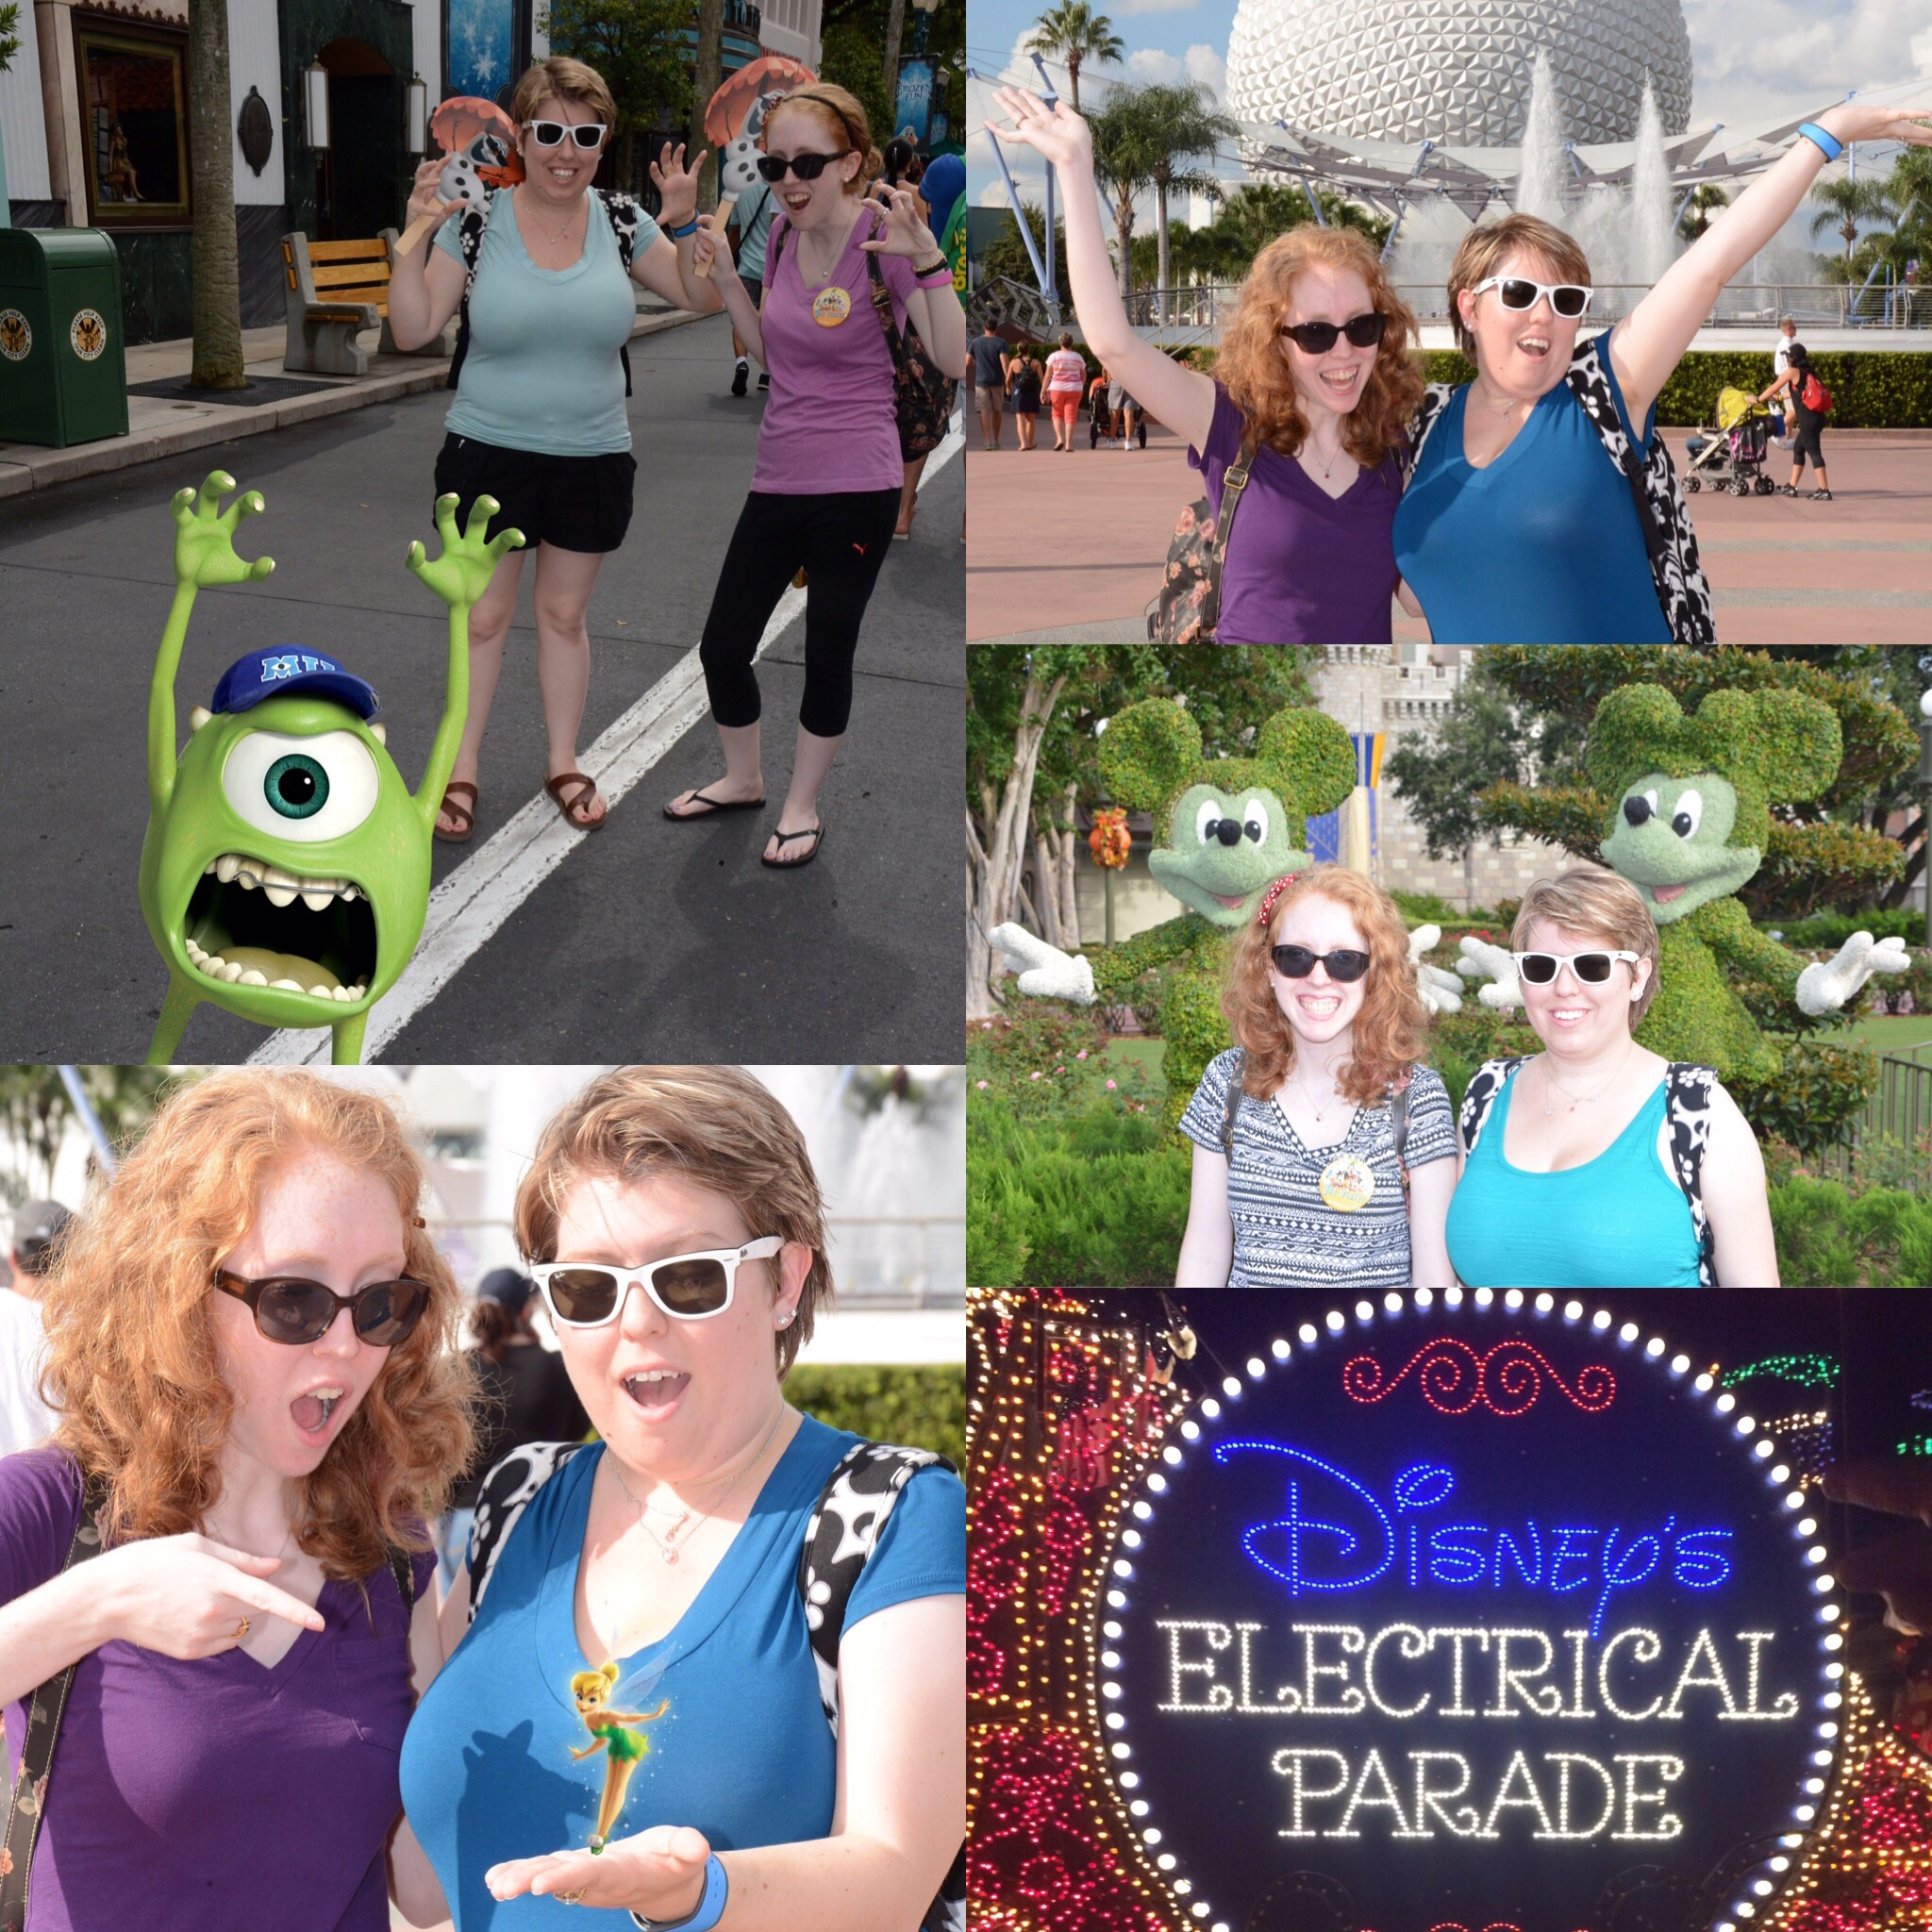 My first trip to Disney WORLD! Soph got Magic Shots as a b-day gift for me (and so all of our pics weren't selfies, since it was just the two of us! Smart gal!)